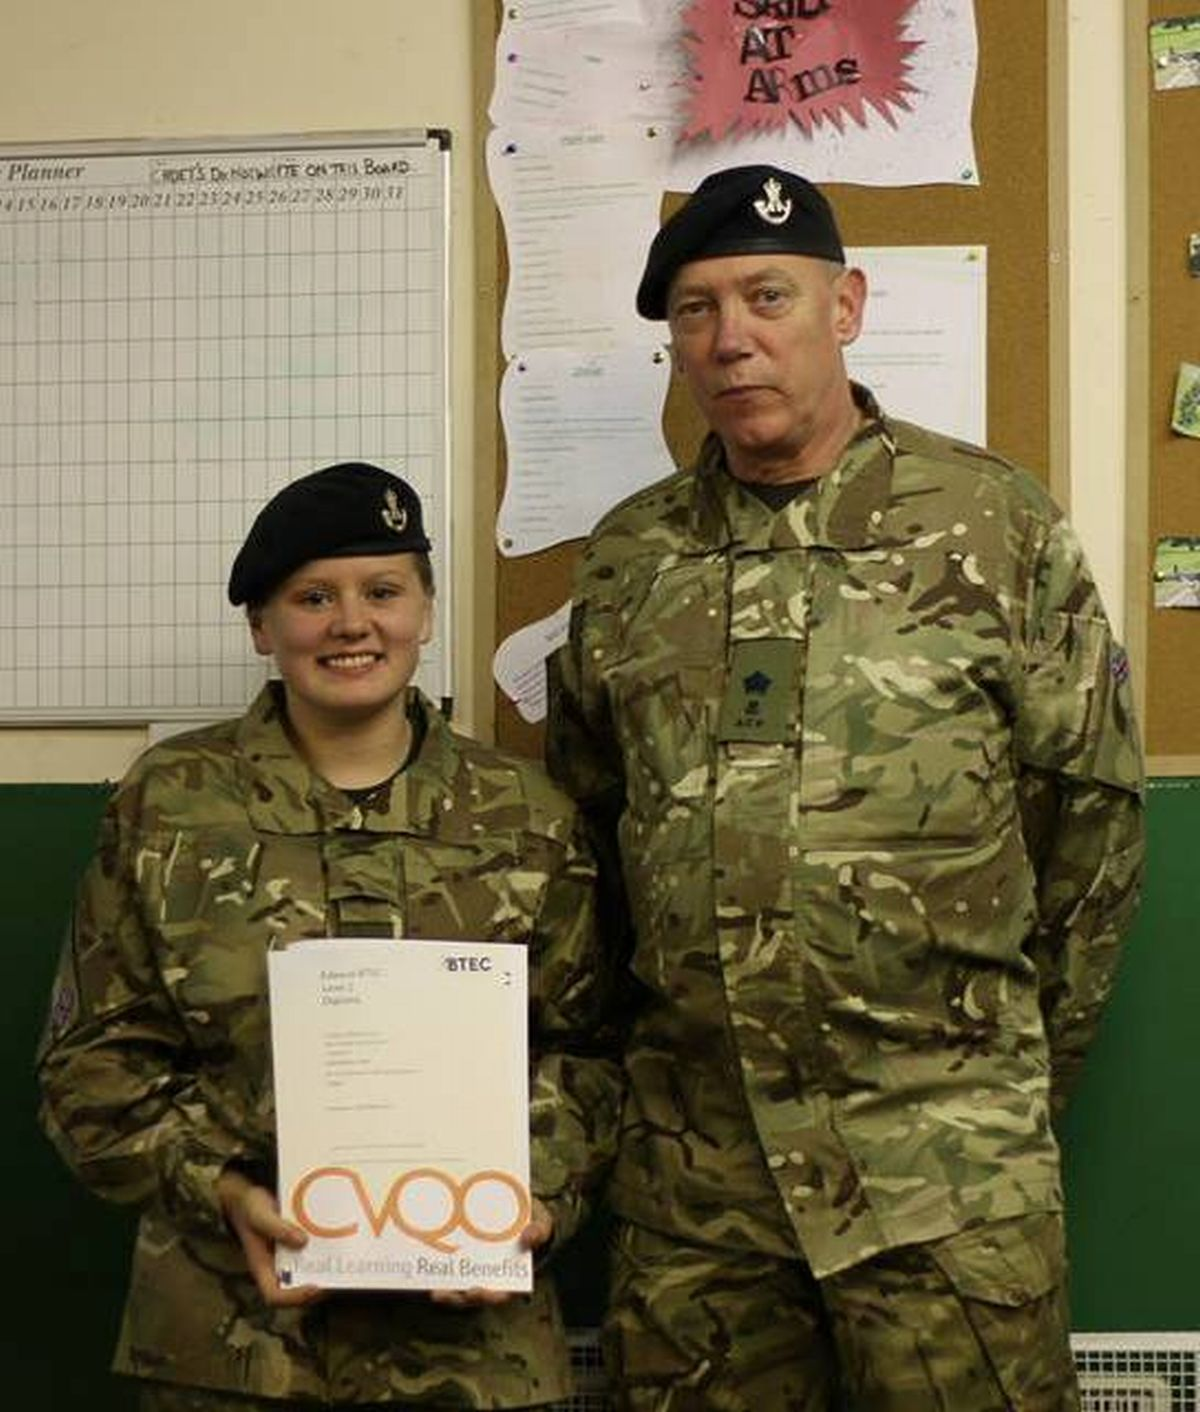 Cadet Shannon Came receiving her BTEC certificate from adult instructor Major Trunks at Cannington Platoon.